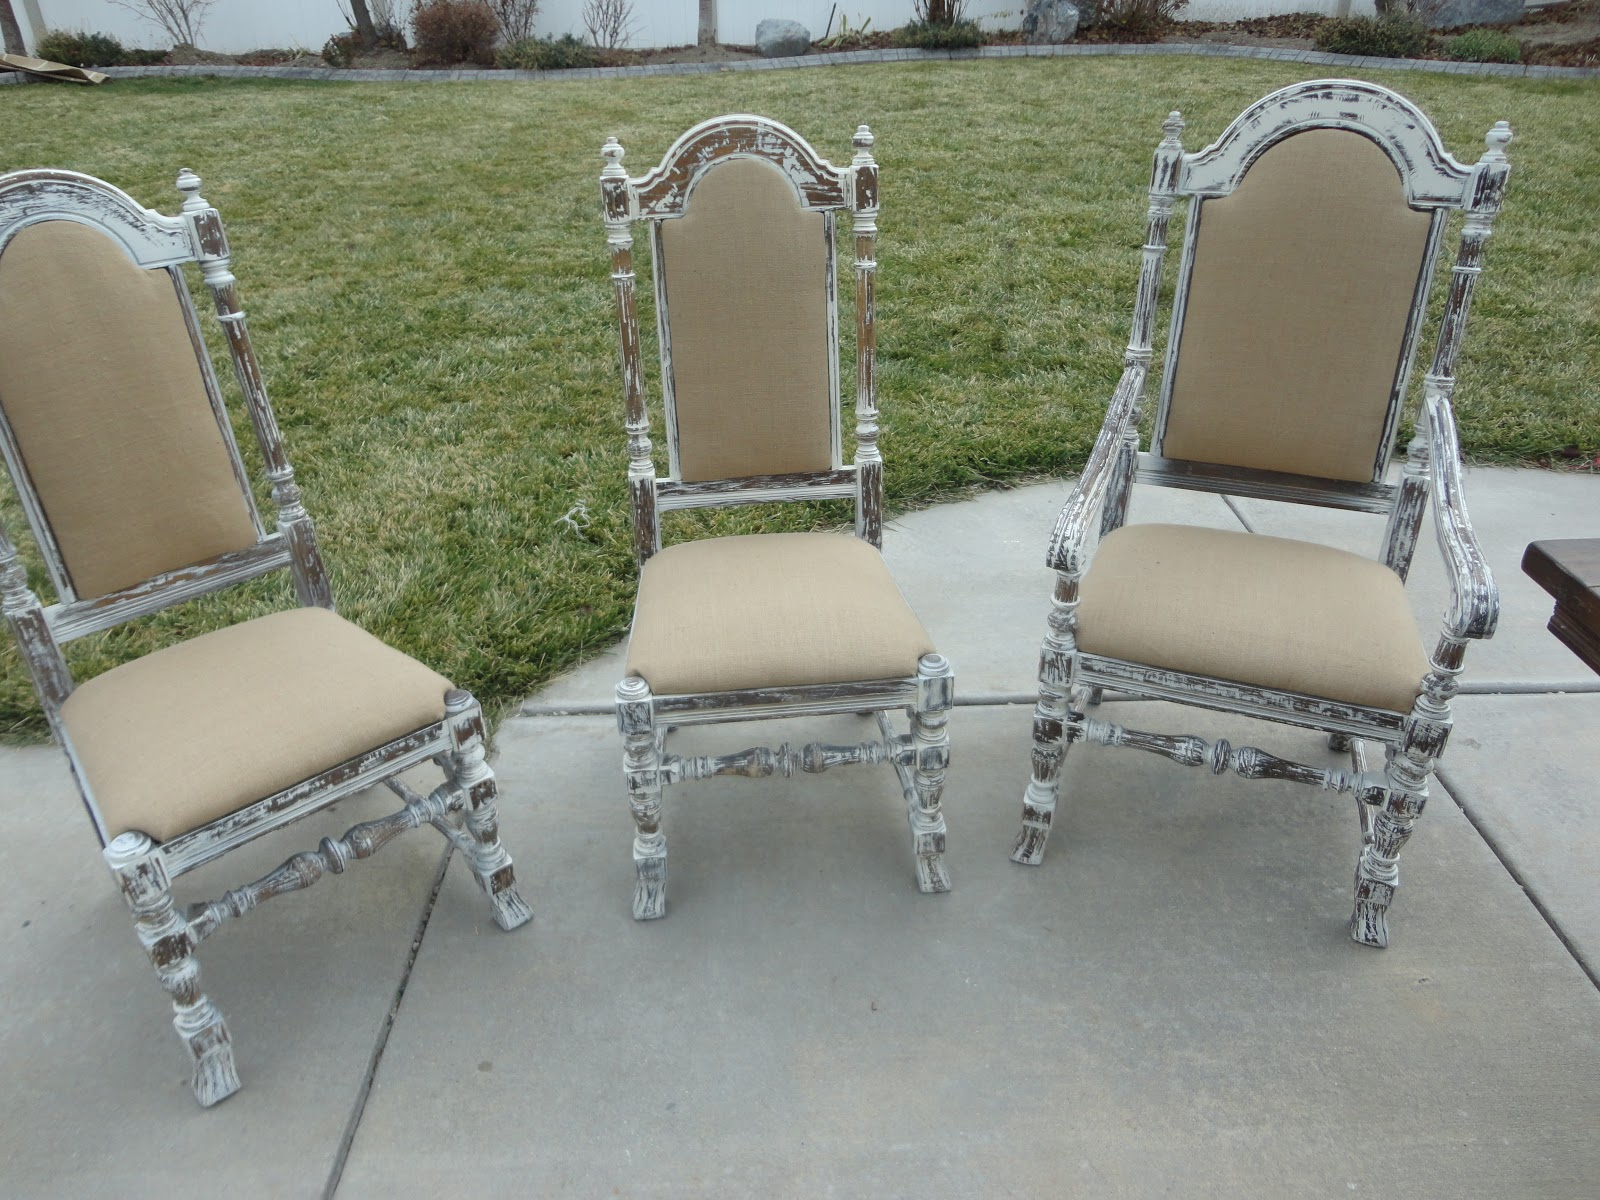 Three Refinished Ethan Allen Chairs With Chippy Paint Wood And  Reupholstered In Burlap Fabric. $99 Each Or $400 With The Dining Table.